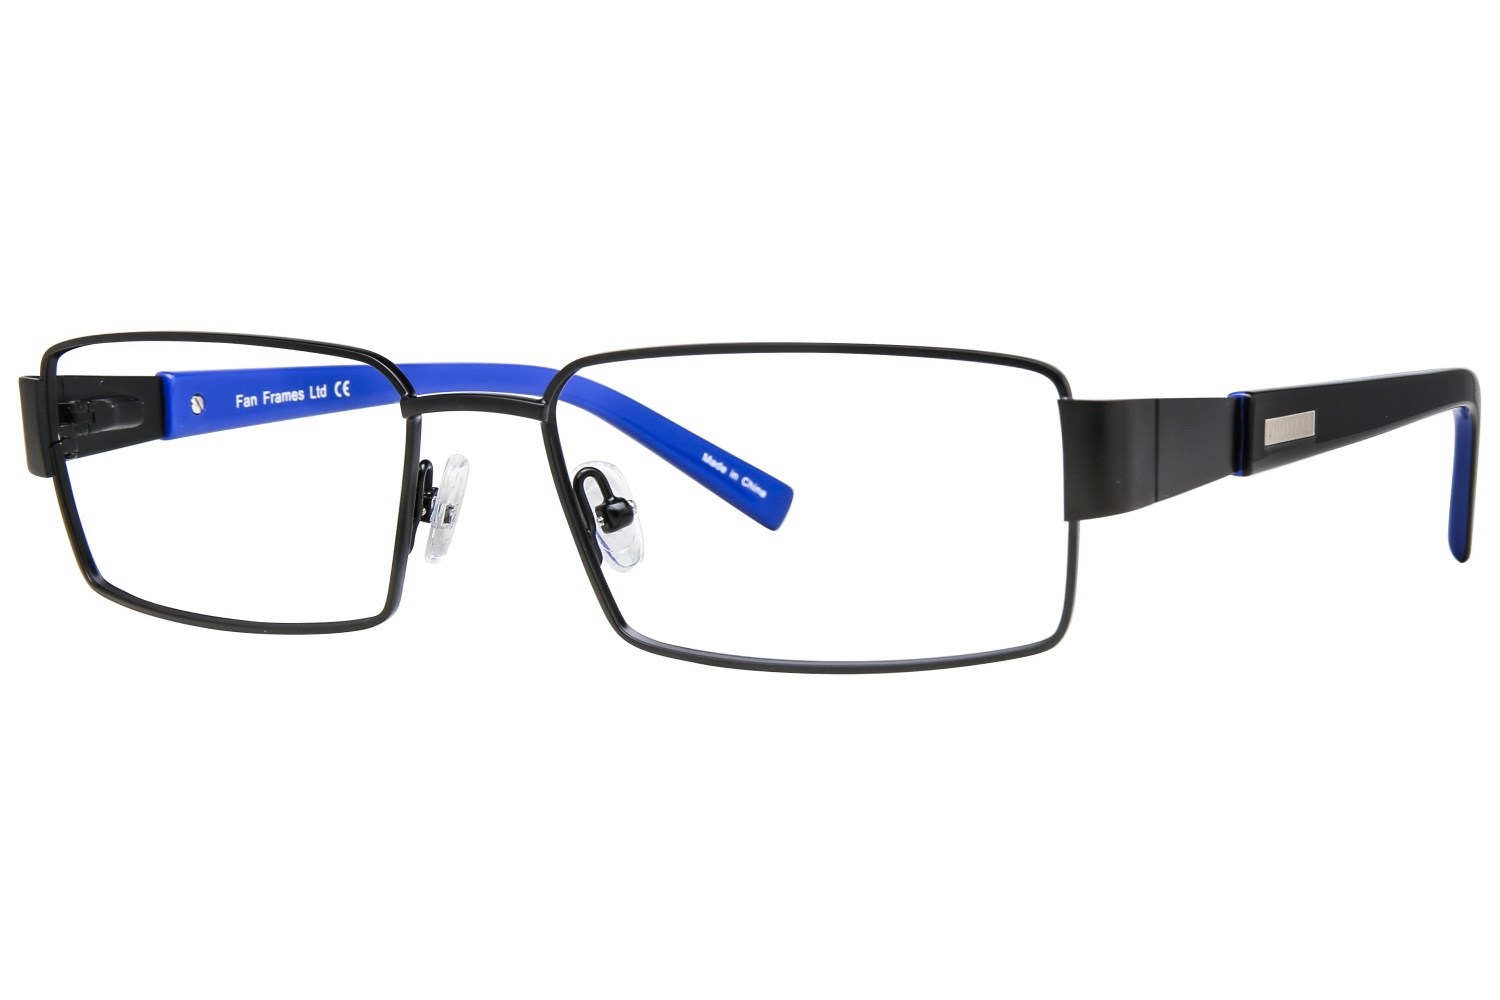 fan-frames-chelsea-fc-kids-prescription-eyeglasses